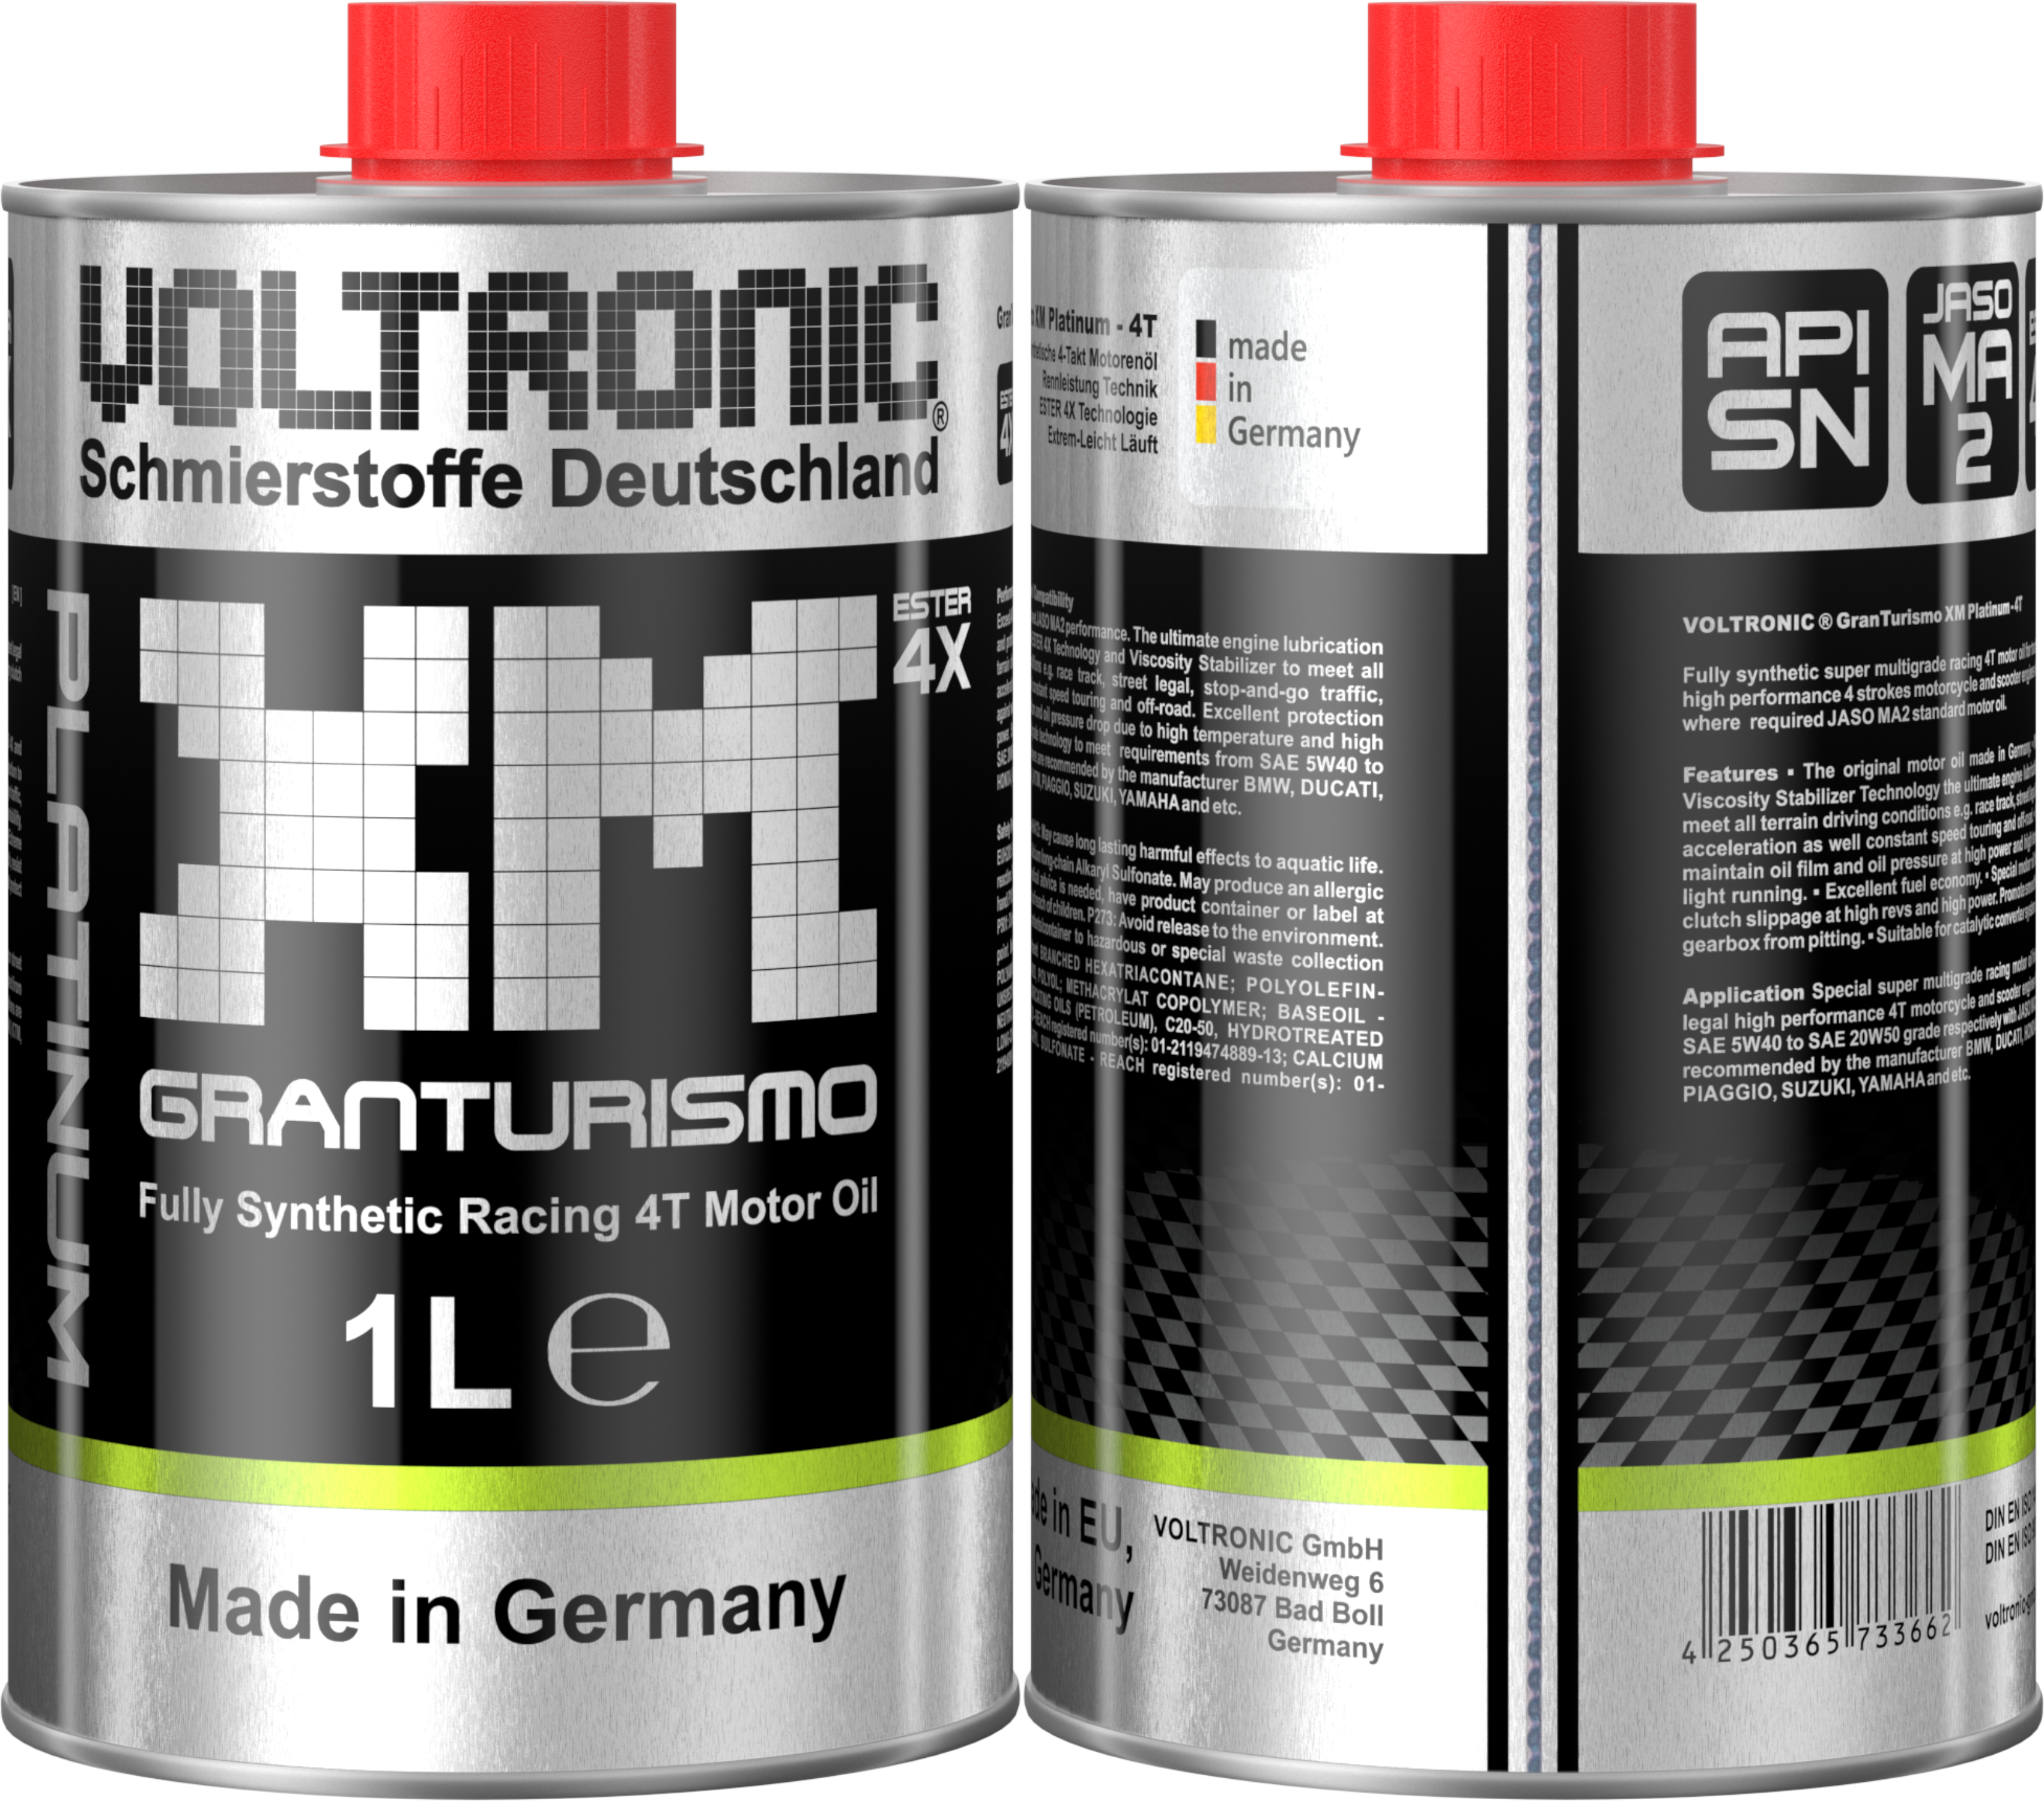 voltronic xm platinum oil